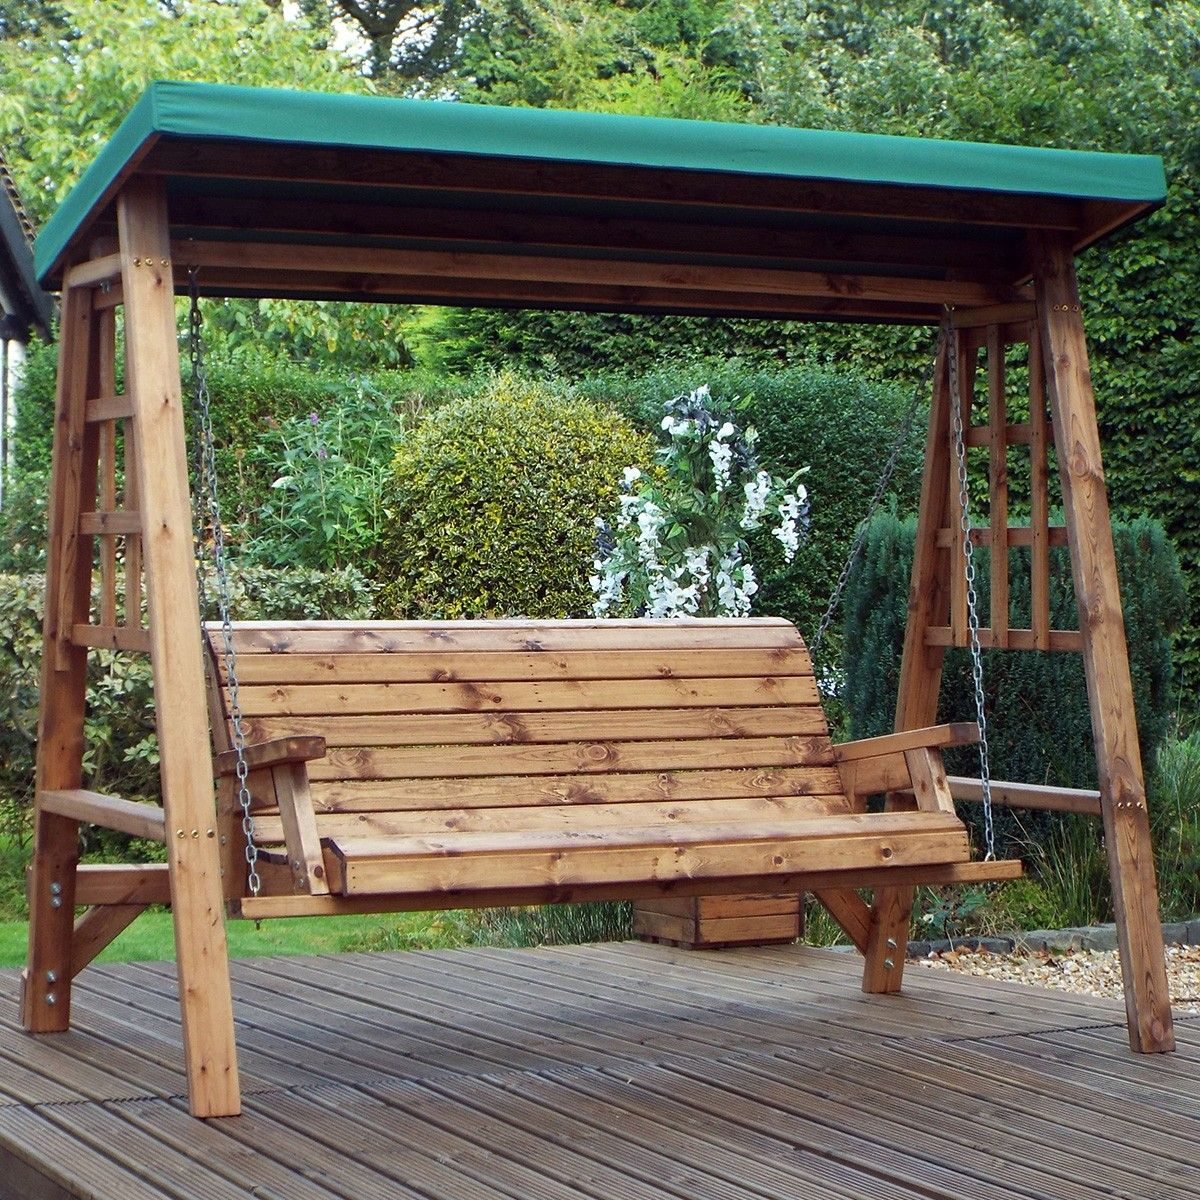 Charles Taylor Dorset 3 Seater Wooden Swing Green 400 x 300